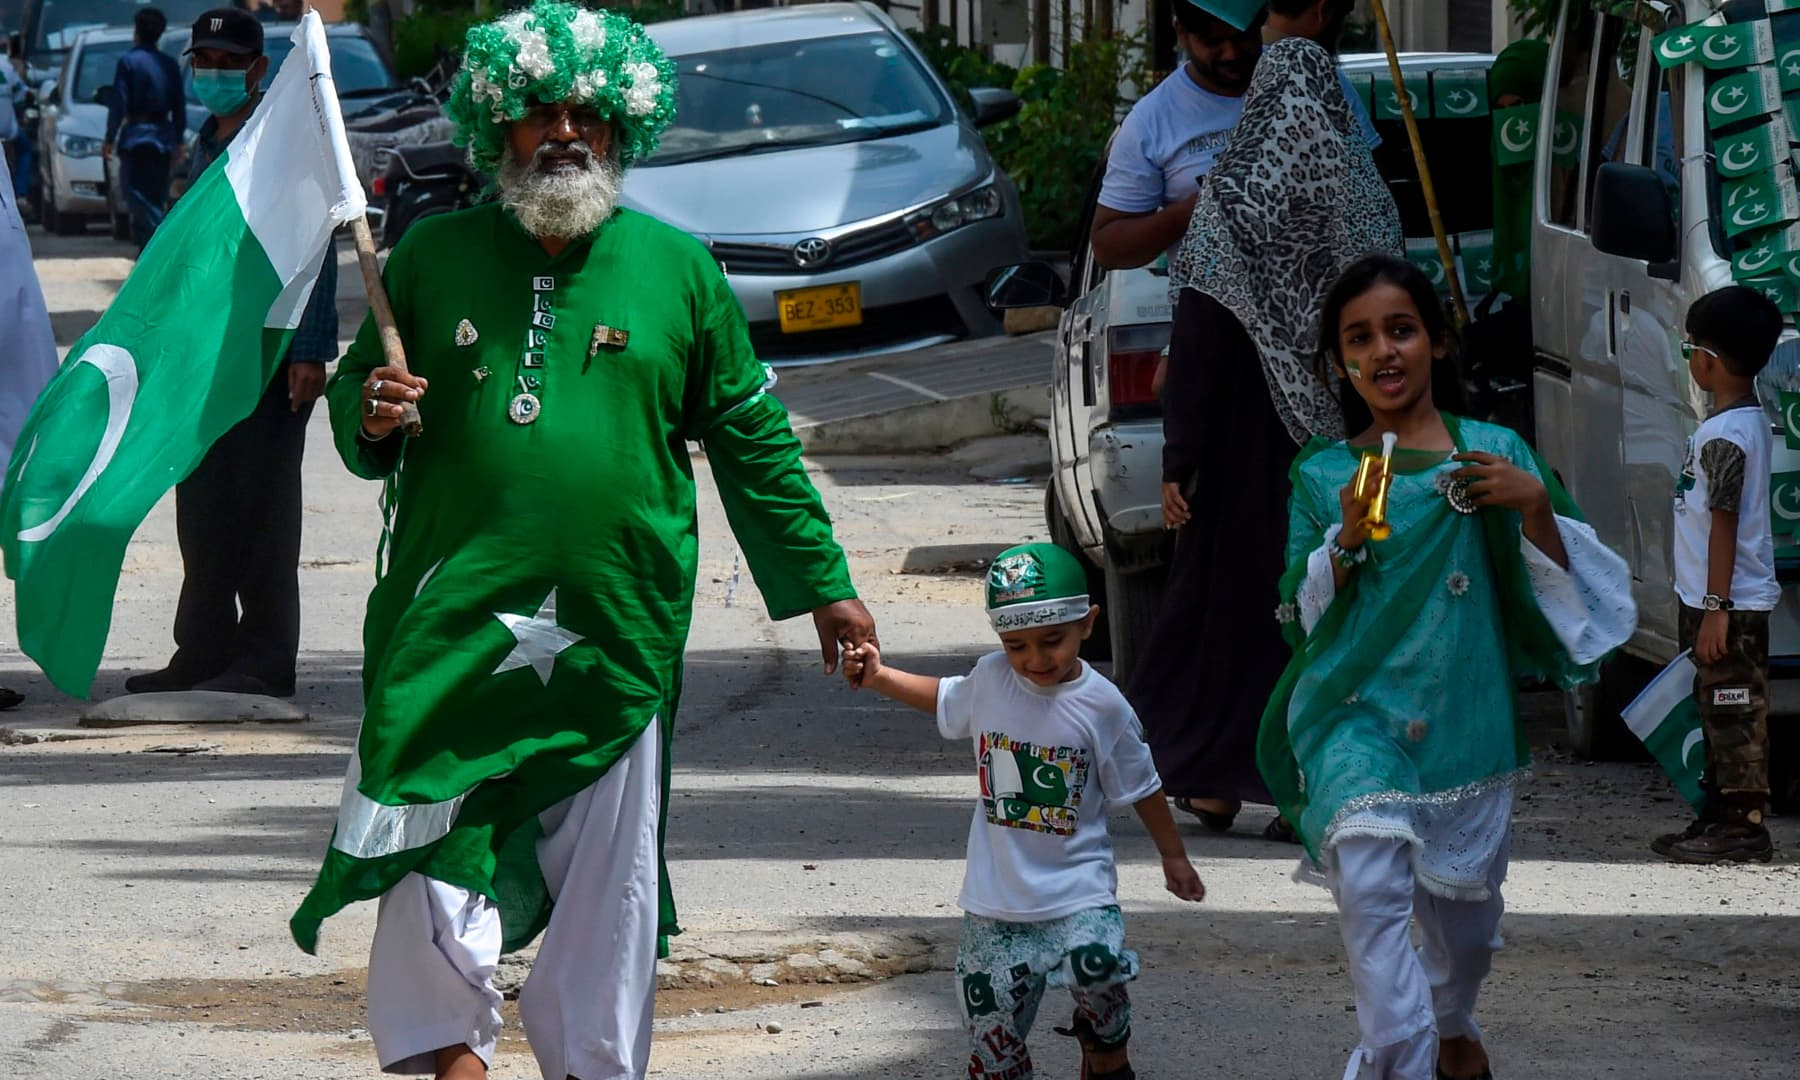 A man wearing an outfit designed as the Pakistani national flag walks along with his children in Karachi. — AFP